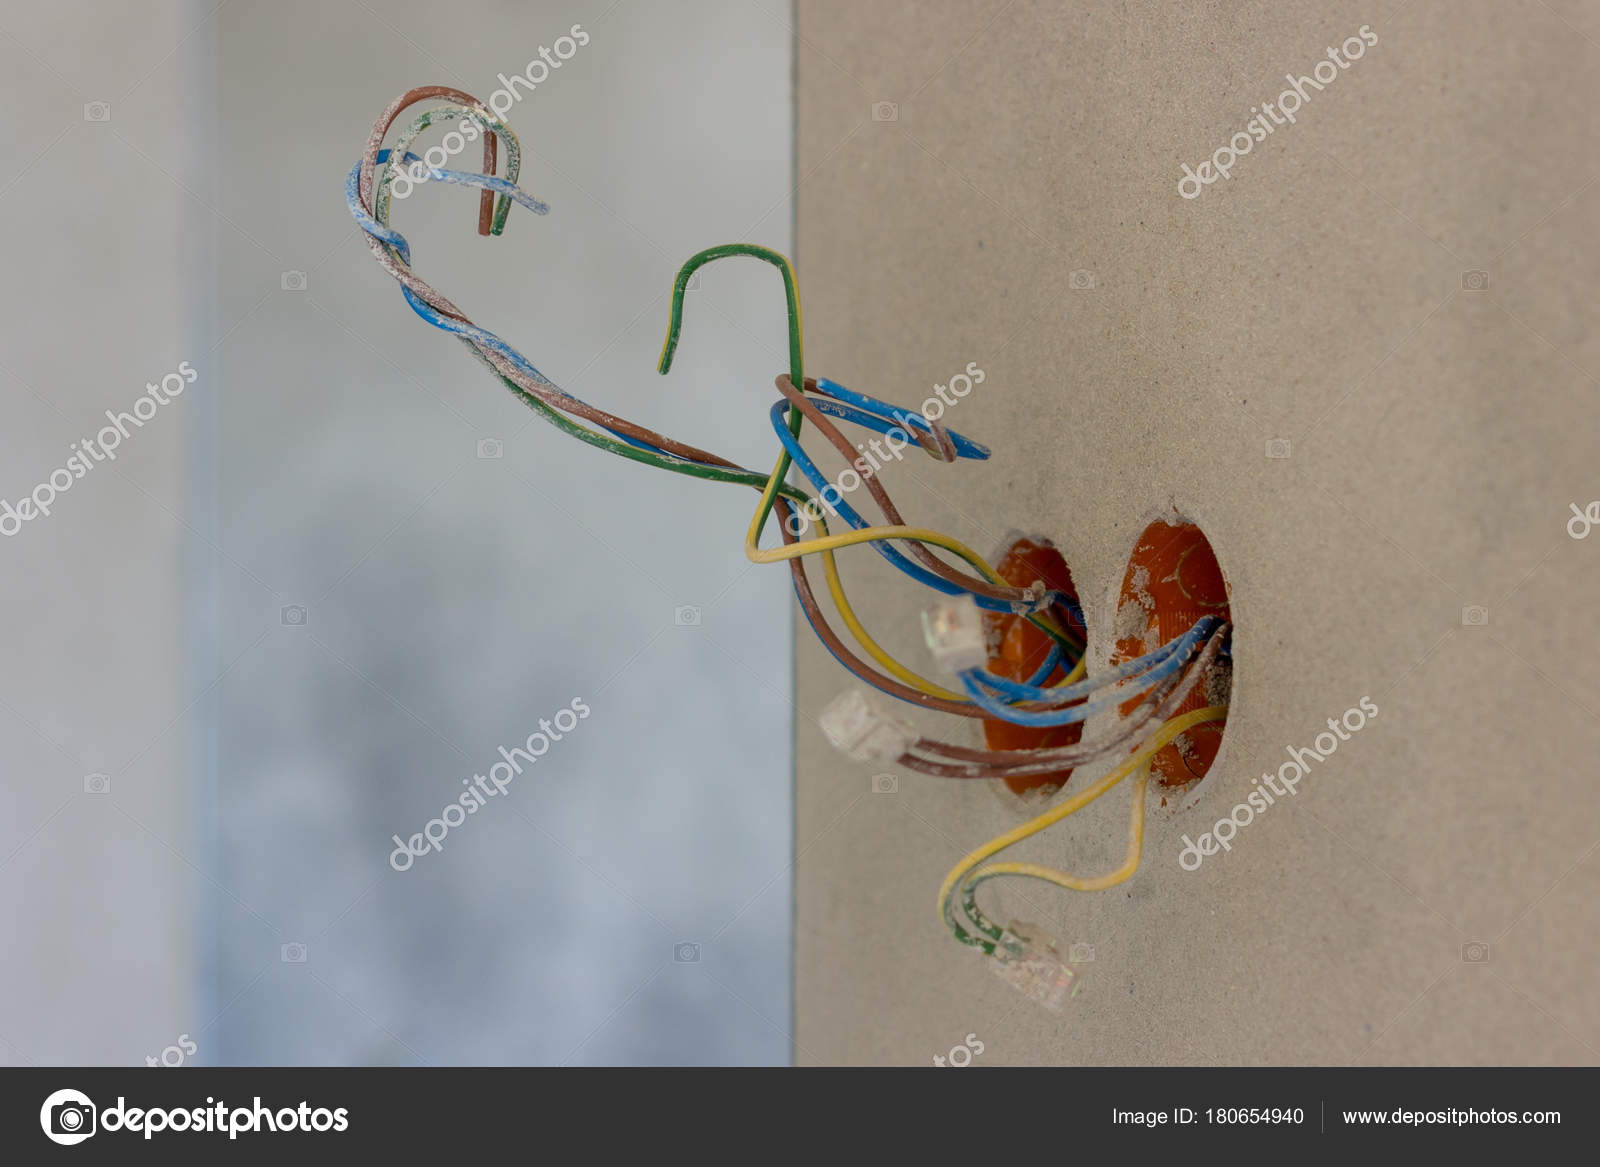 Fabulous Electric Socket Colorful Wires New House Interior Construction Wiring Digital Resources Funapmognl